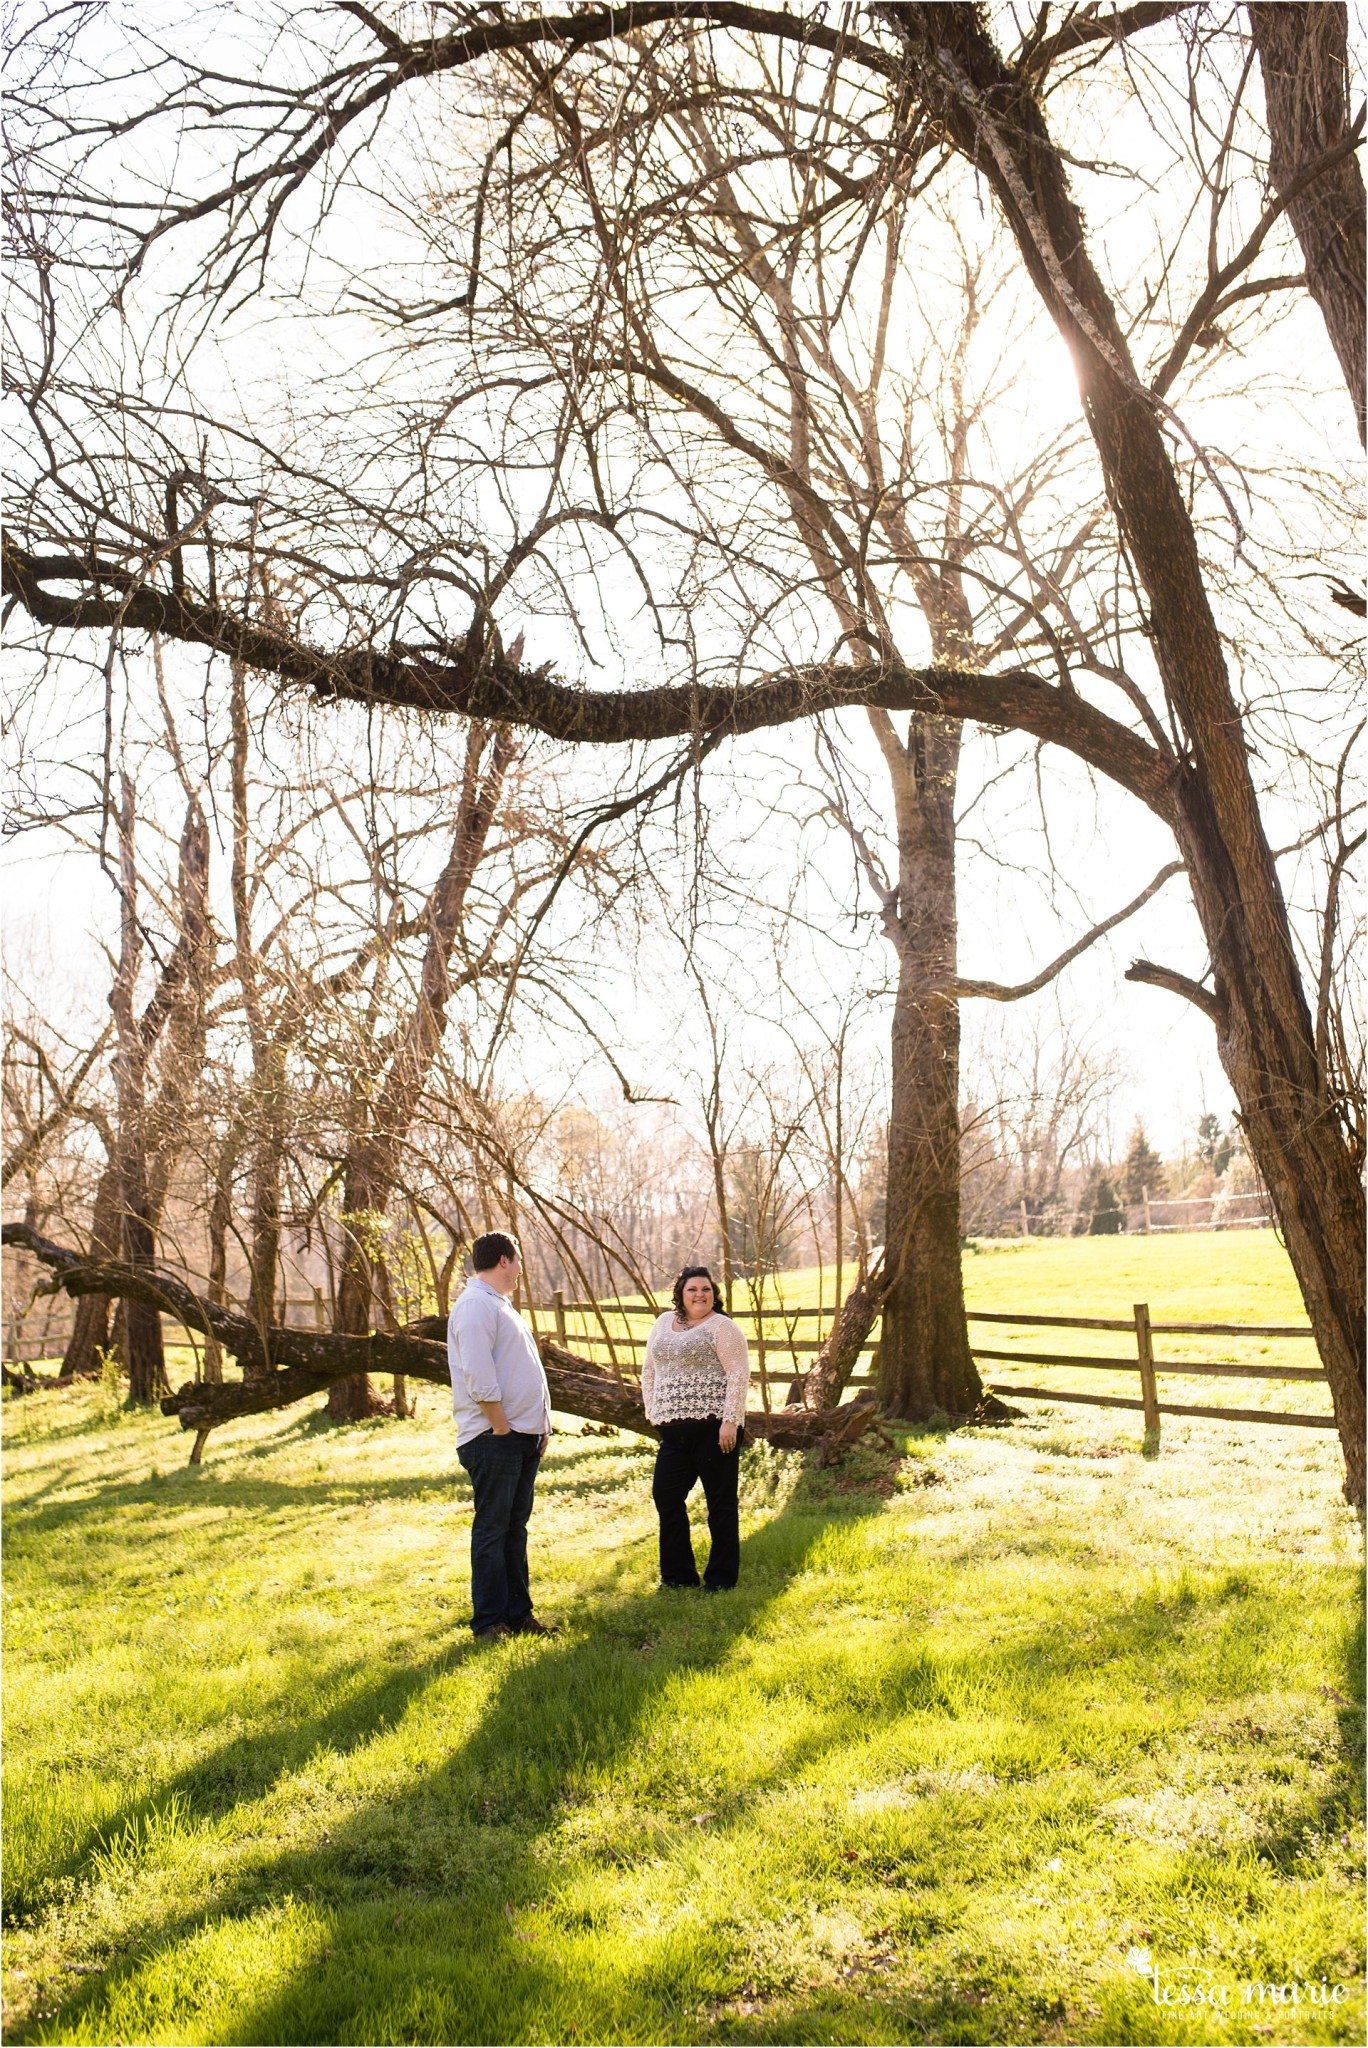 Barnsley_gardens_engagement_pictures_wedding_photographer_0013